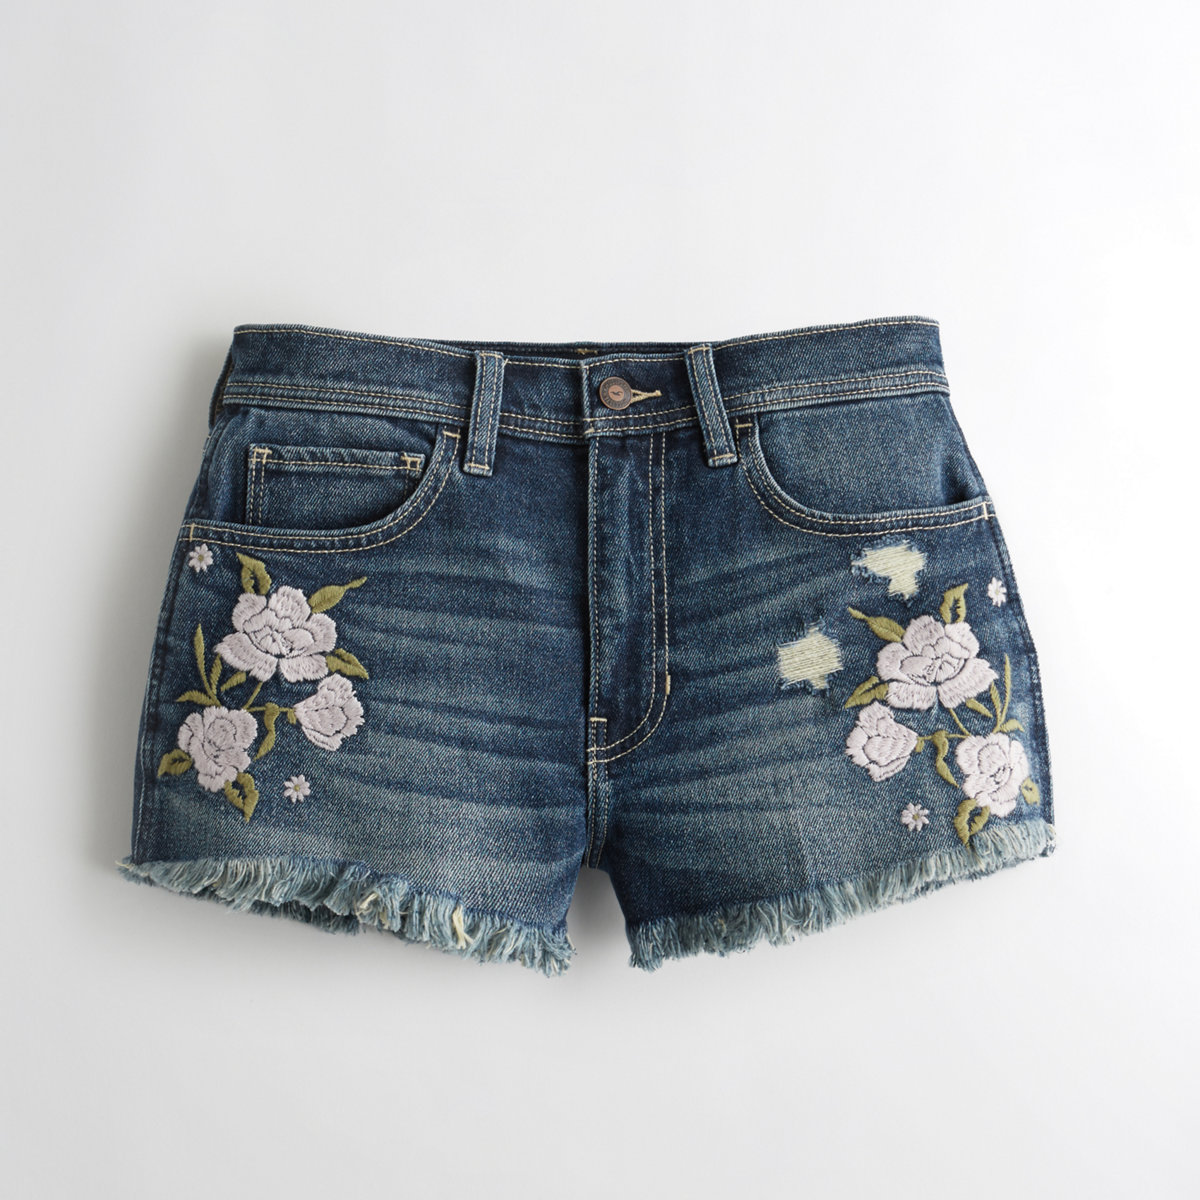 Vintage Stretch High-Rise Denim Vintage Shorts